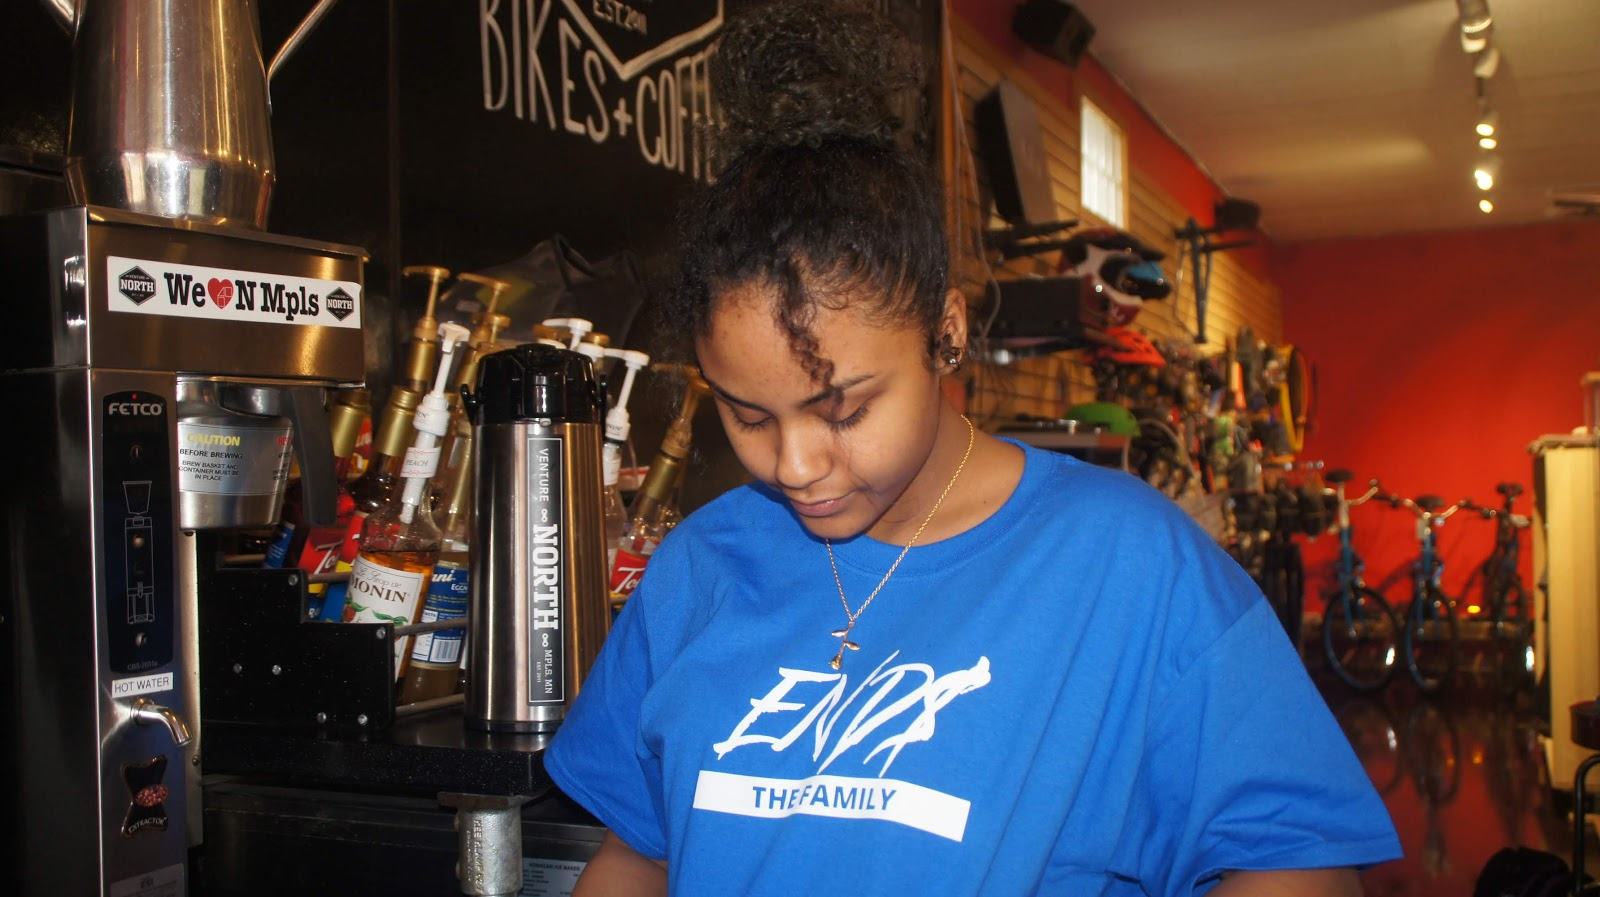 ENDS Photo Featuring END$ The Family Scripture Tshirt  | Model Jennifer DeCoteau at Venture Note